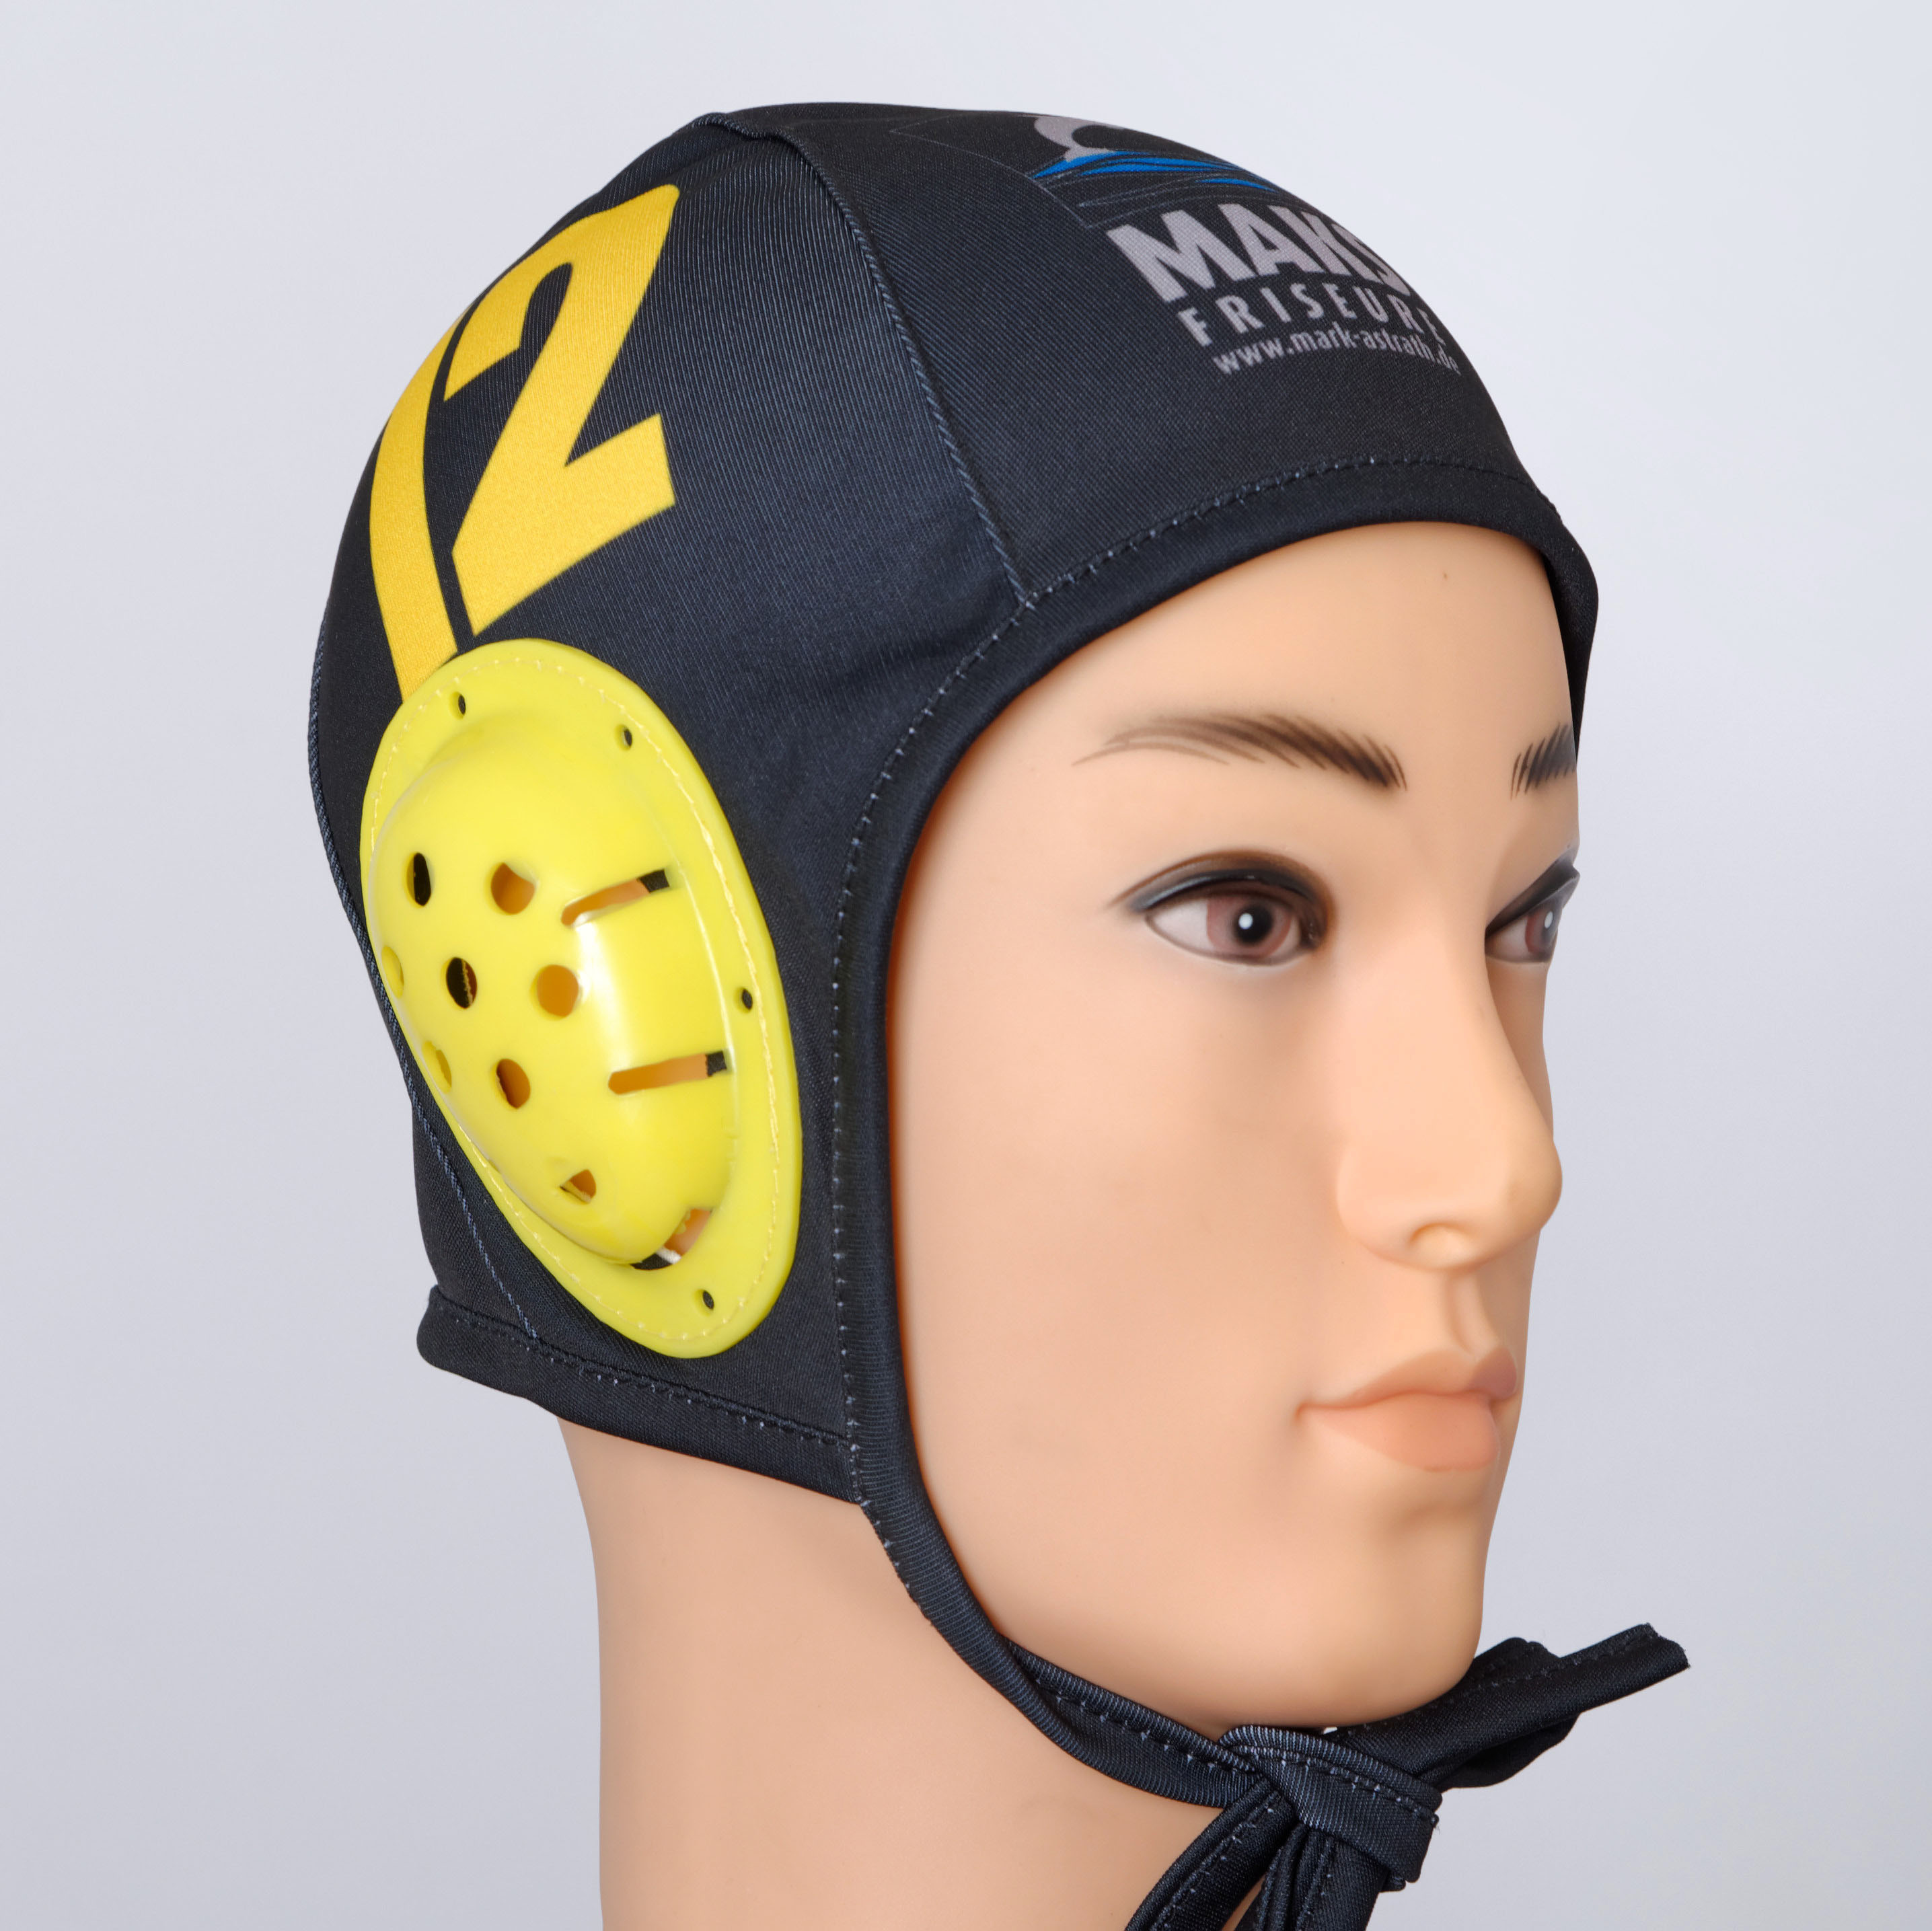 Yellow and black custom water polo helmet.